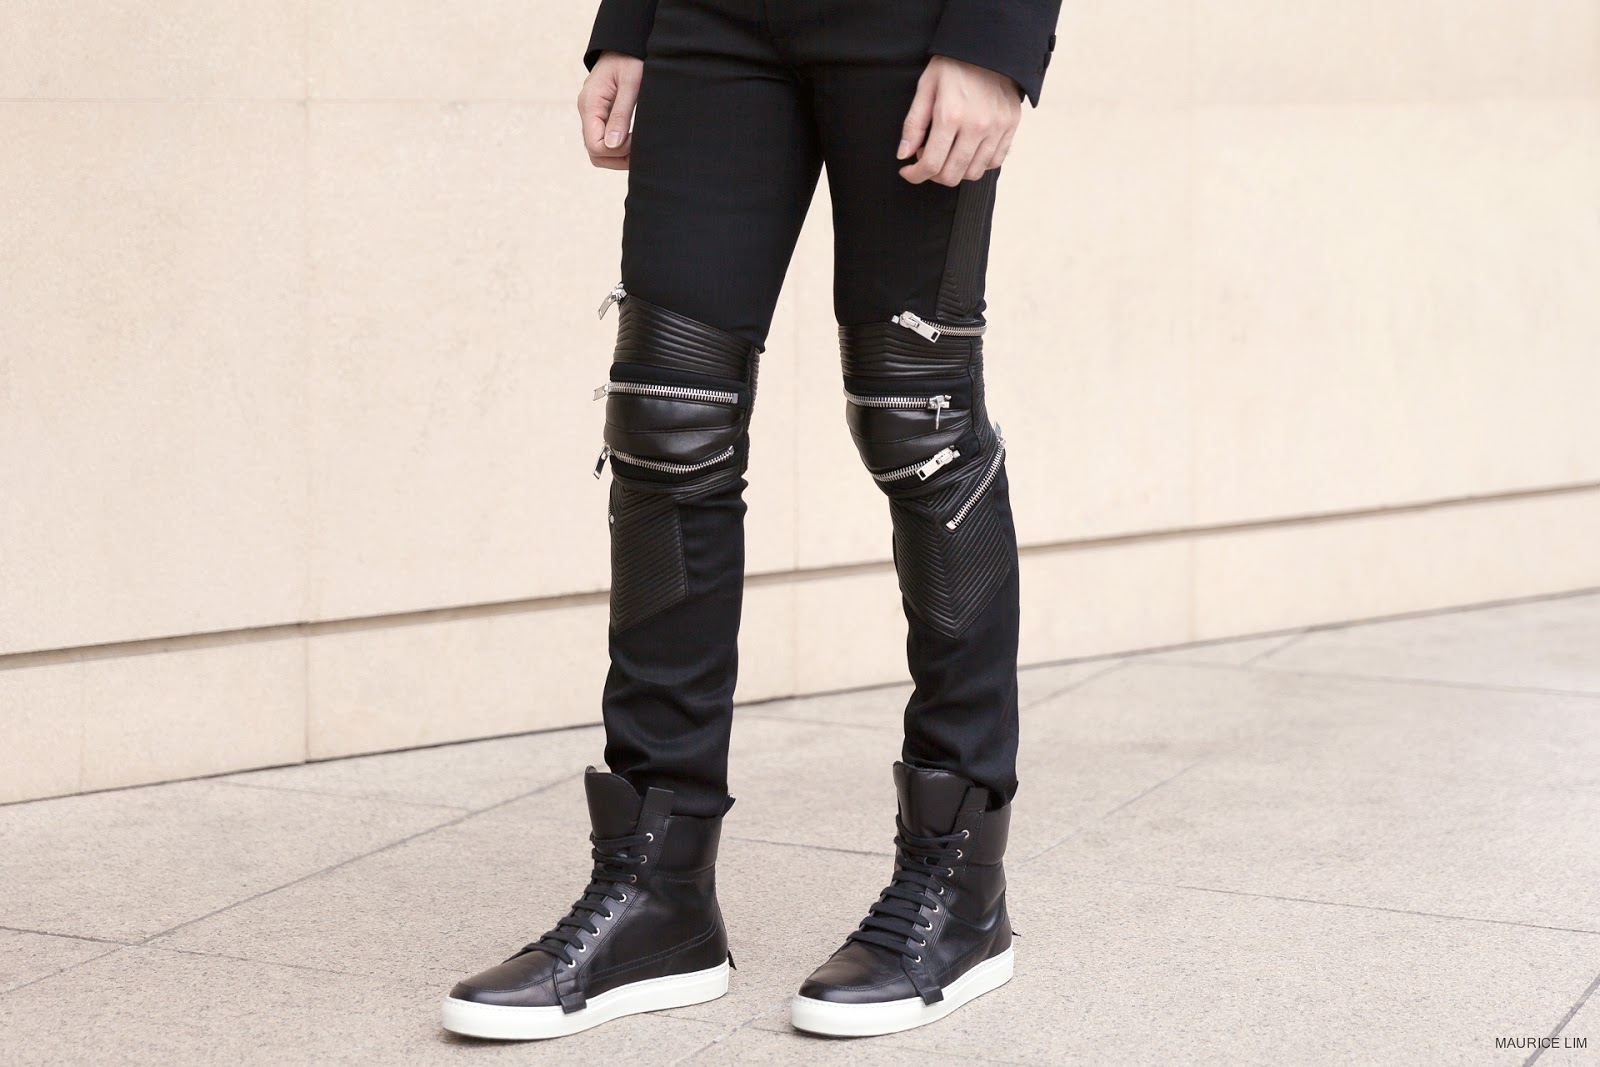 e7776359a89 Perhaps not for your everyday enjoyment, these one-of-kind Saint Laurent  Leather and Denim Zip-Detail Biker Jeans are not aim for basic comfort or  even ...